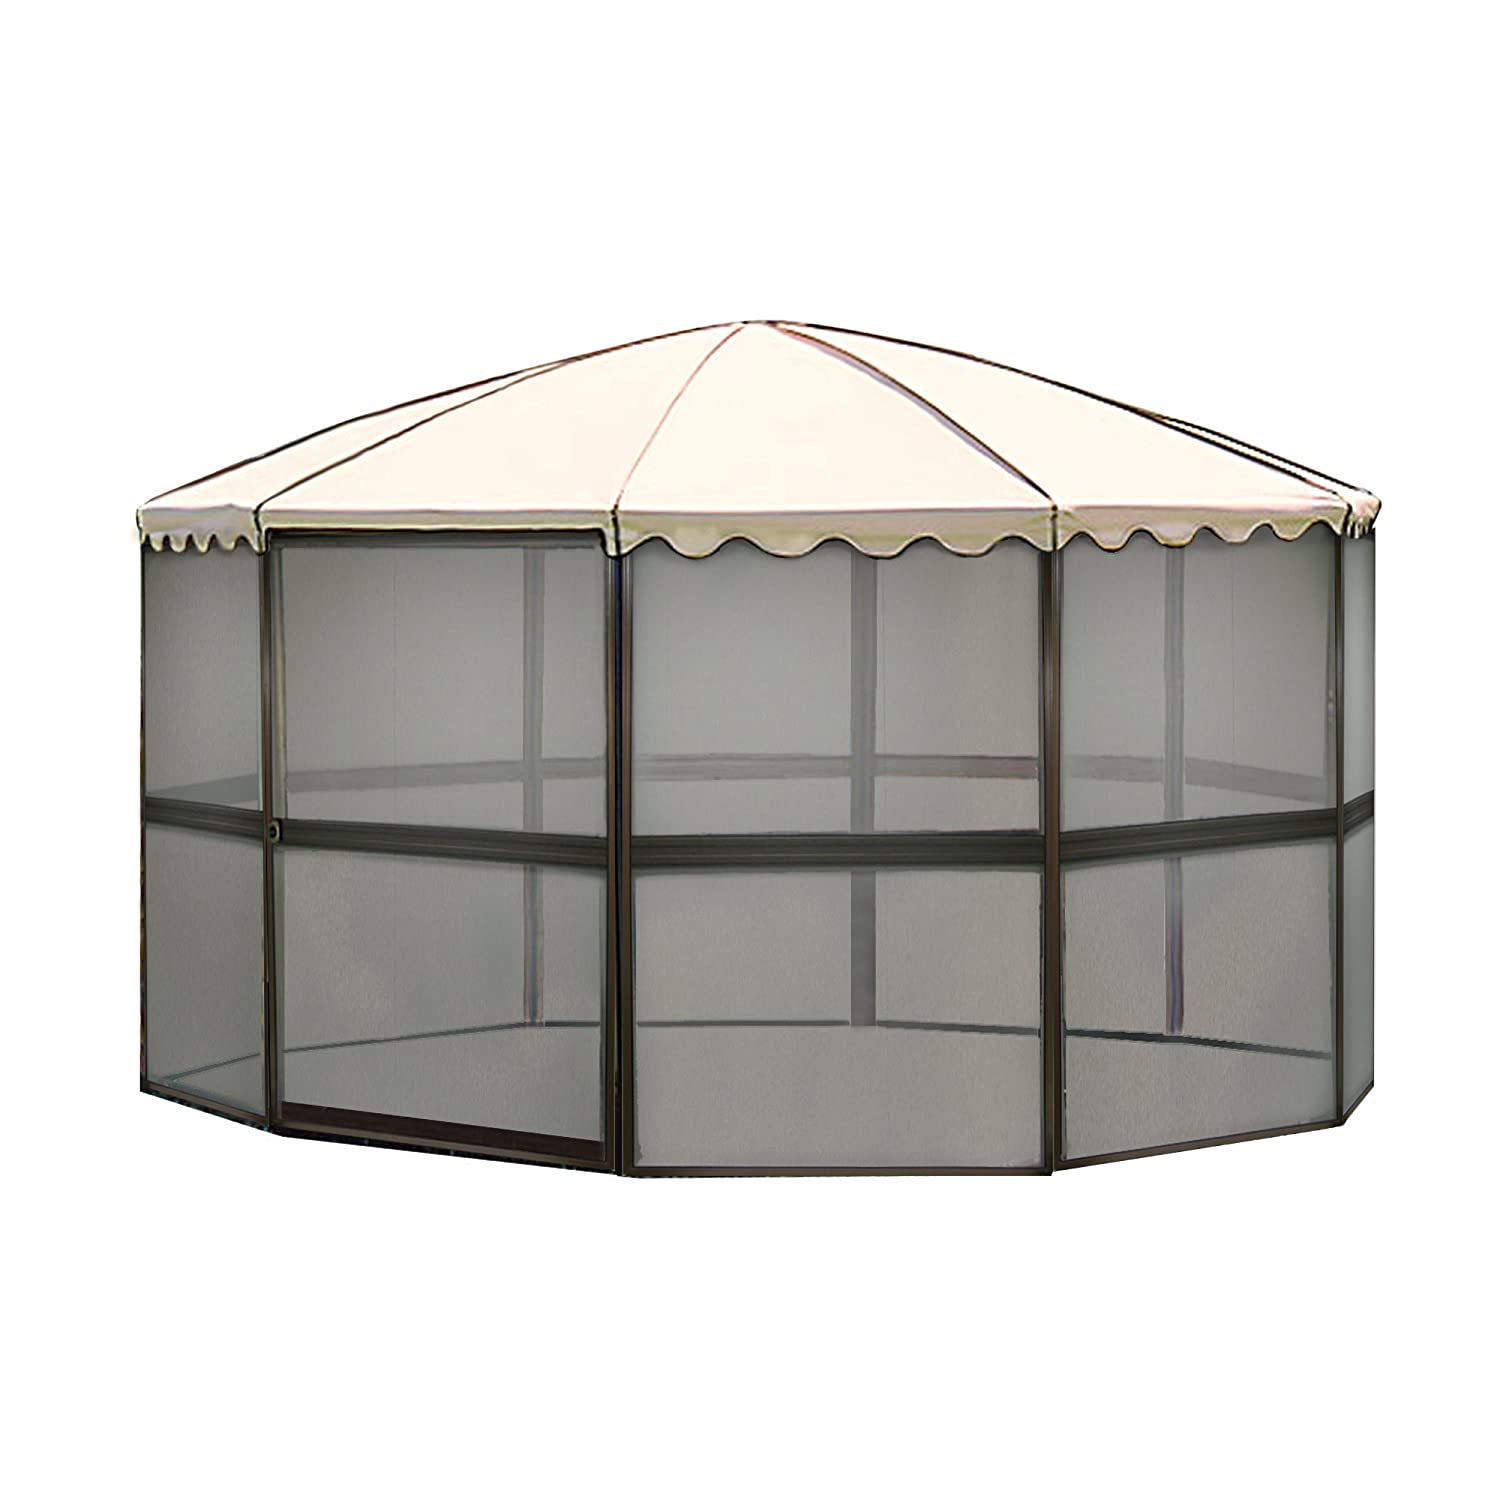 Casita 10-Panel Round Screenhouse 3165 03165 Brown with Almond Roof Canopy